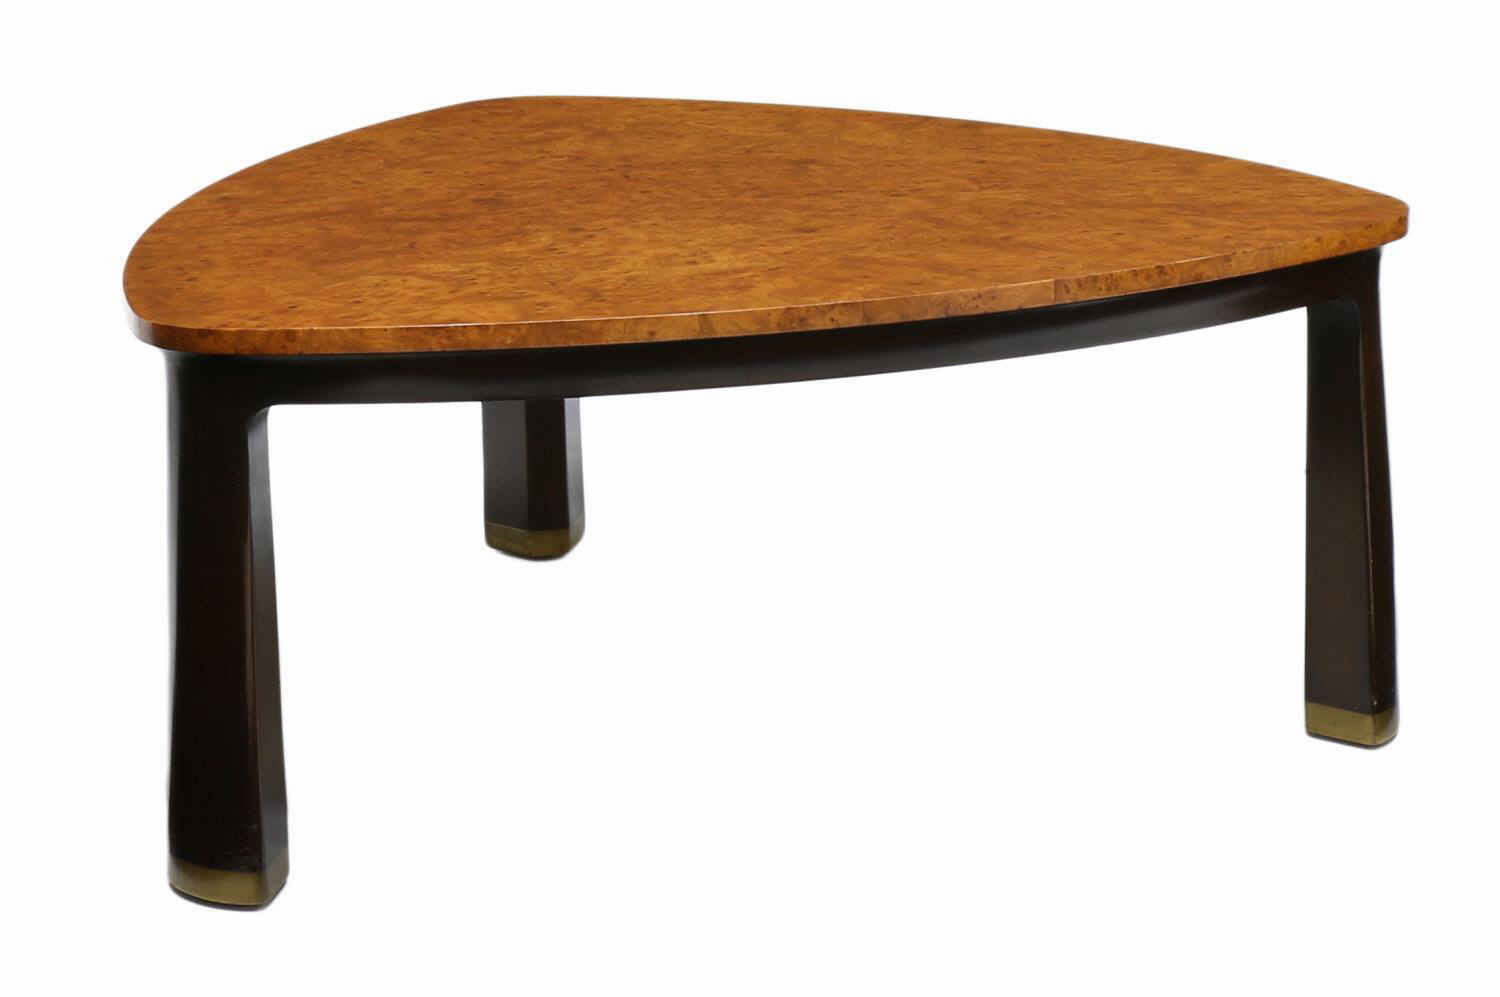 Wormley Dunbar Elmwood Coffee Table 6029 Important Two Day Auction Day One Austin